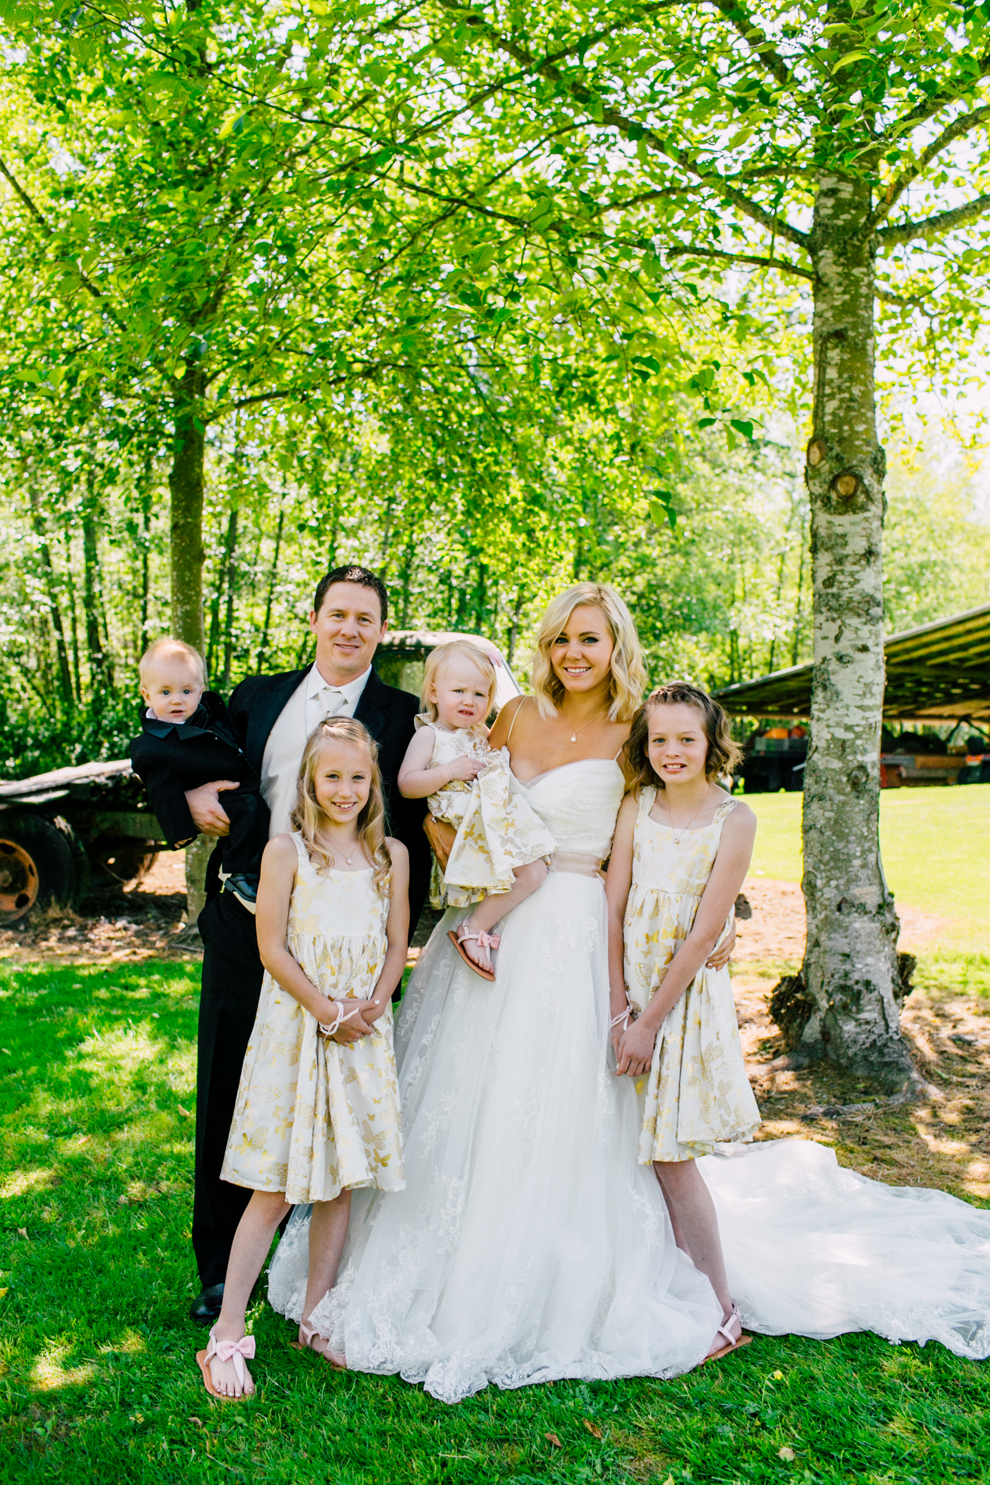 007-lynden-bellingham-wedding-photographer-family-farm-katheryn-moran.jpg